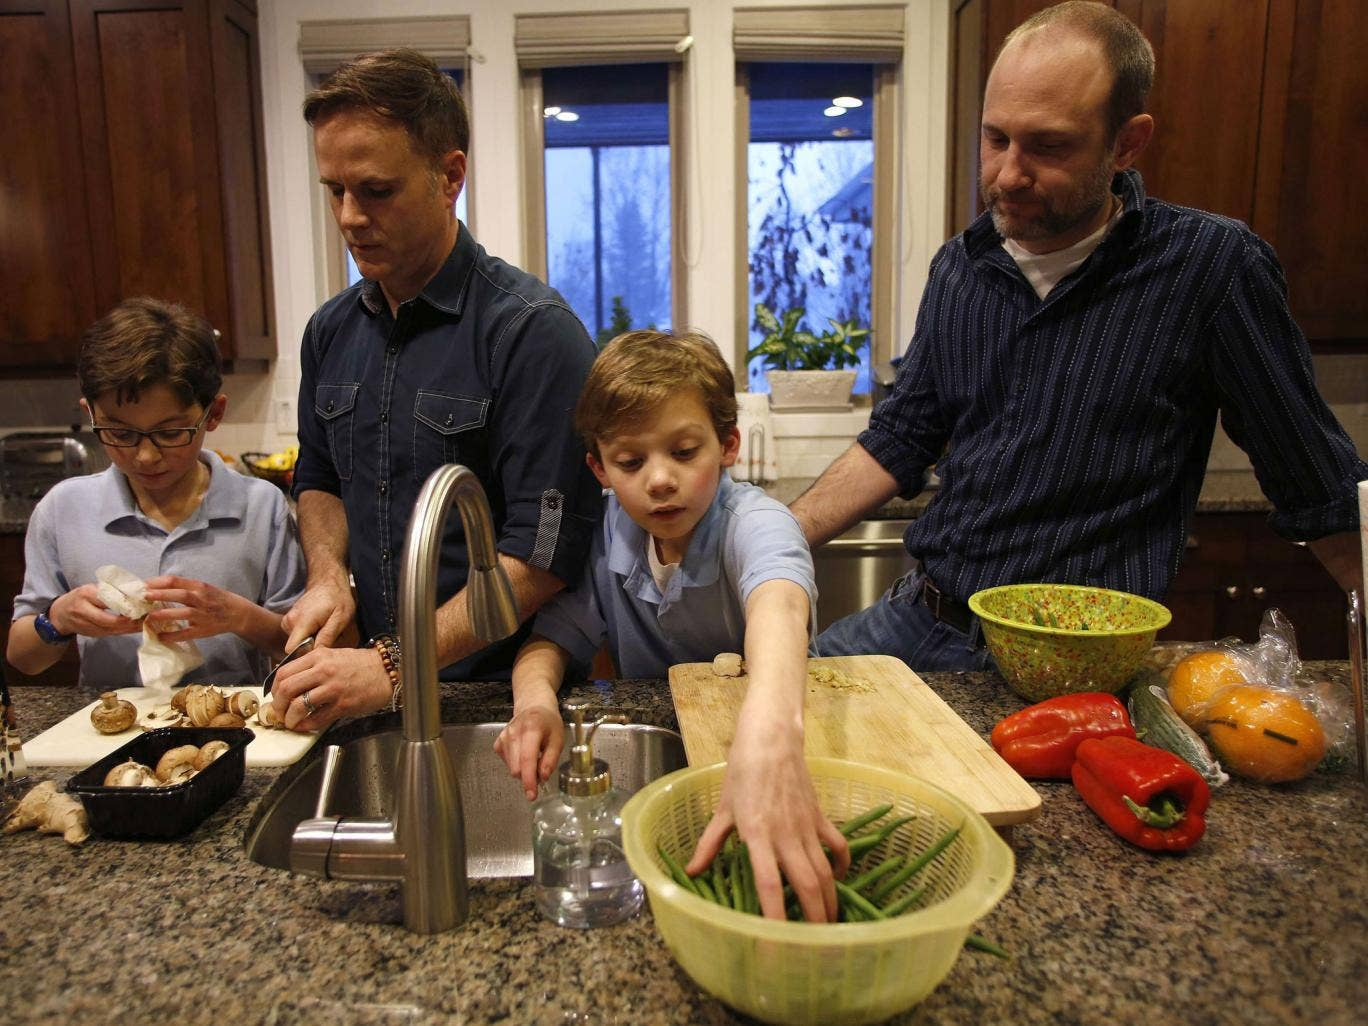 Paul Redd-Butterfield, 2nd left, and his husband Tony Butterfield cook dinner with their adopted 11 year-old twin sons Lucas, left, and Liam at their home in Sandy, Utah. Paul and Tony were legally married on December 23, 2013. The US Government said it w